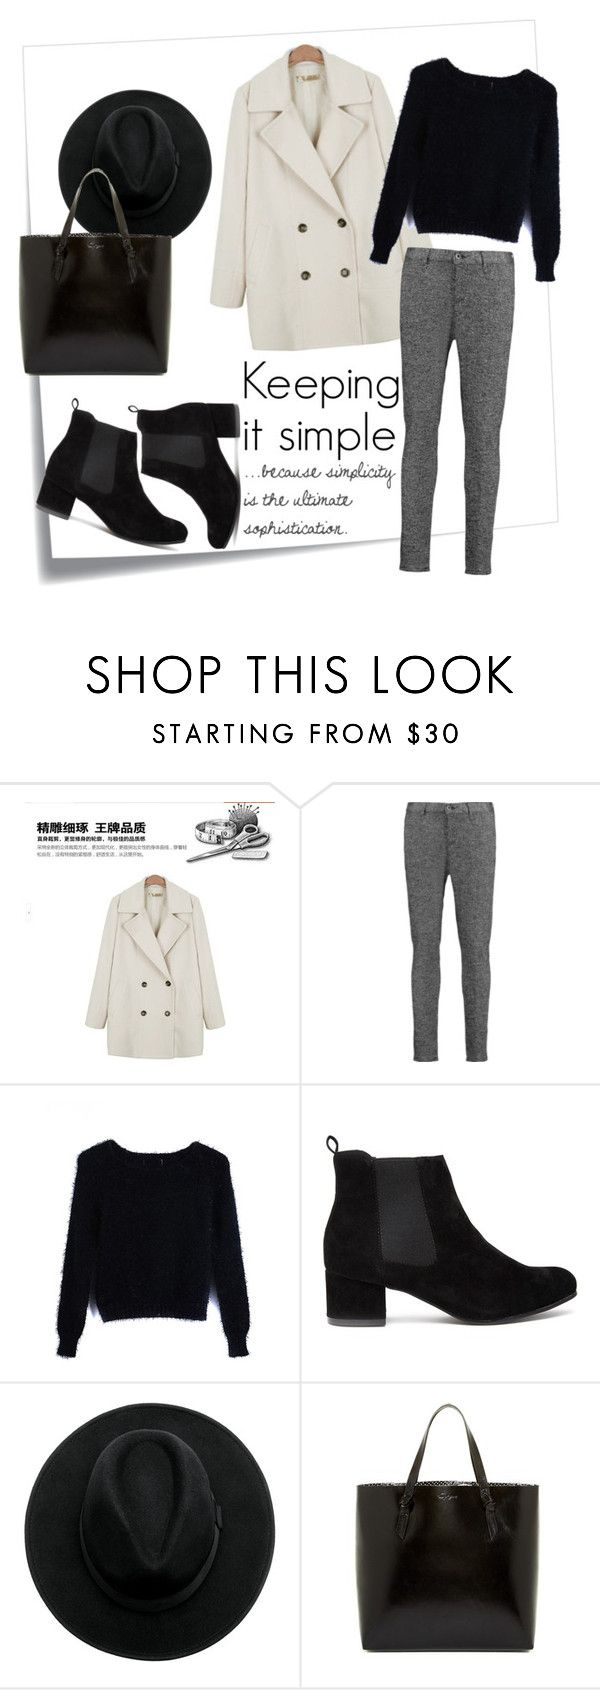 """""""Keeping it simple"""" by taniadeseptembre ❤ liked on Polyvore featuring Post-It, Ashlee, rag & bone and Foley + Corinna"""